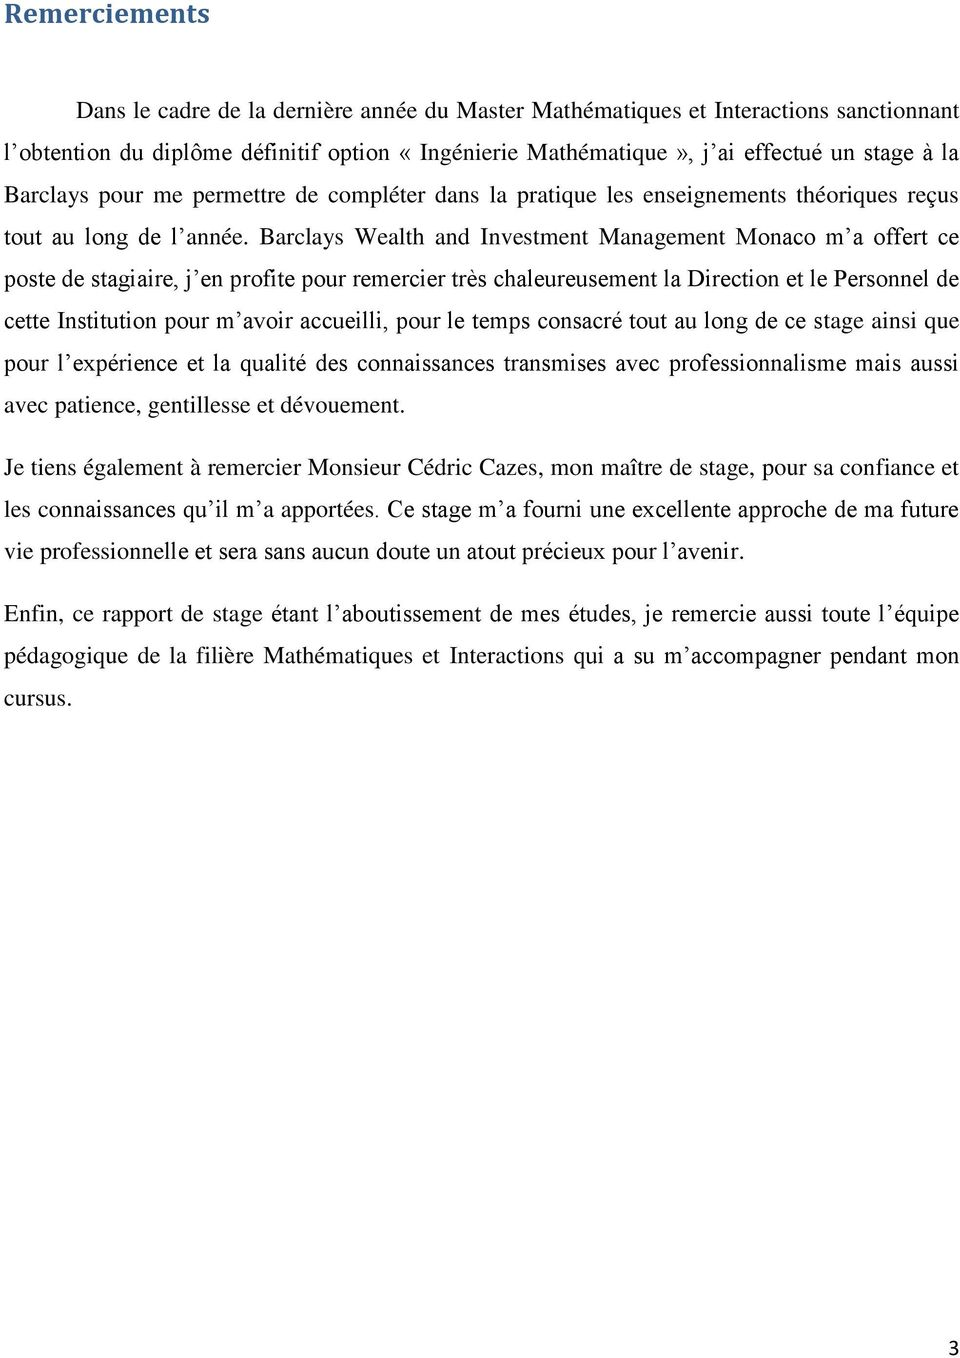 Barclays Wealth and Investment Management Monaco m a offert ce poste de stagiaire, j en profite pour remercier très chaleureusement la Direction et le Personnel de cette Institution pour m avoir